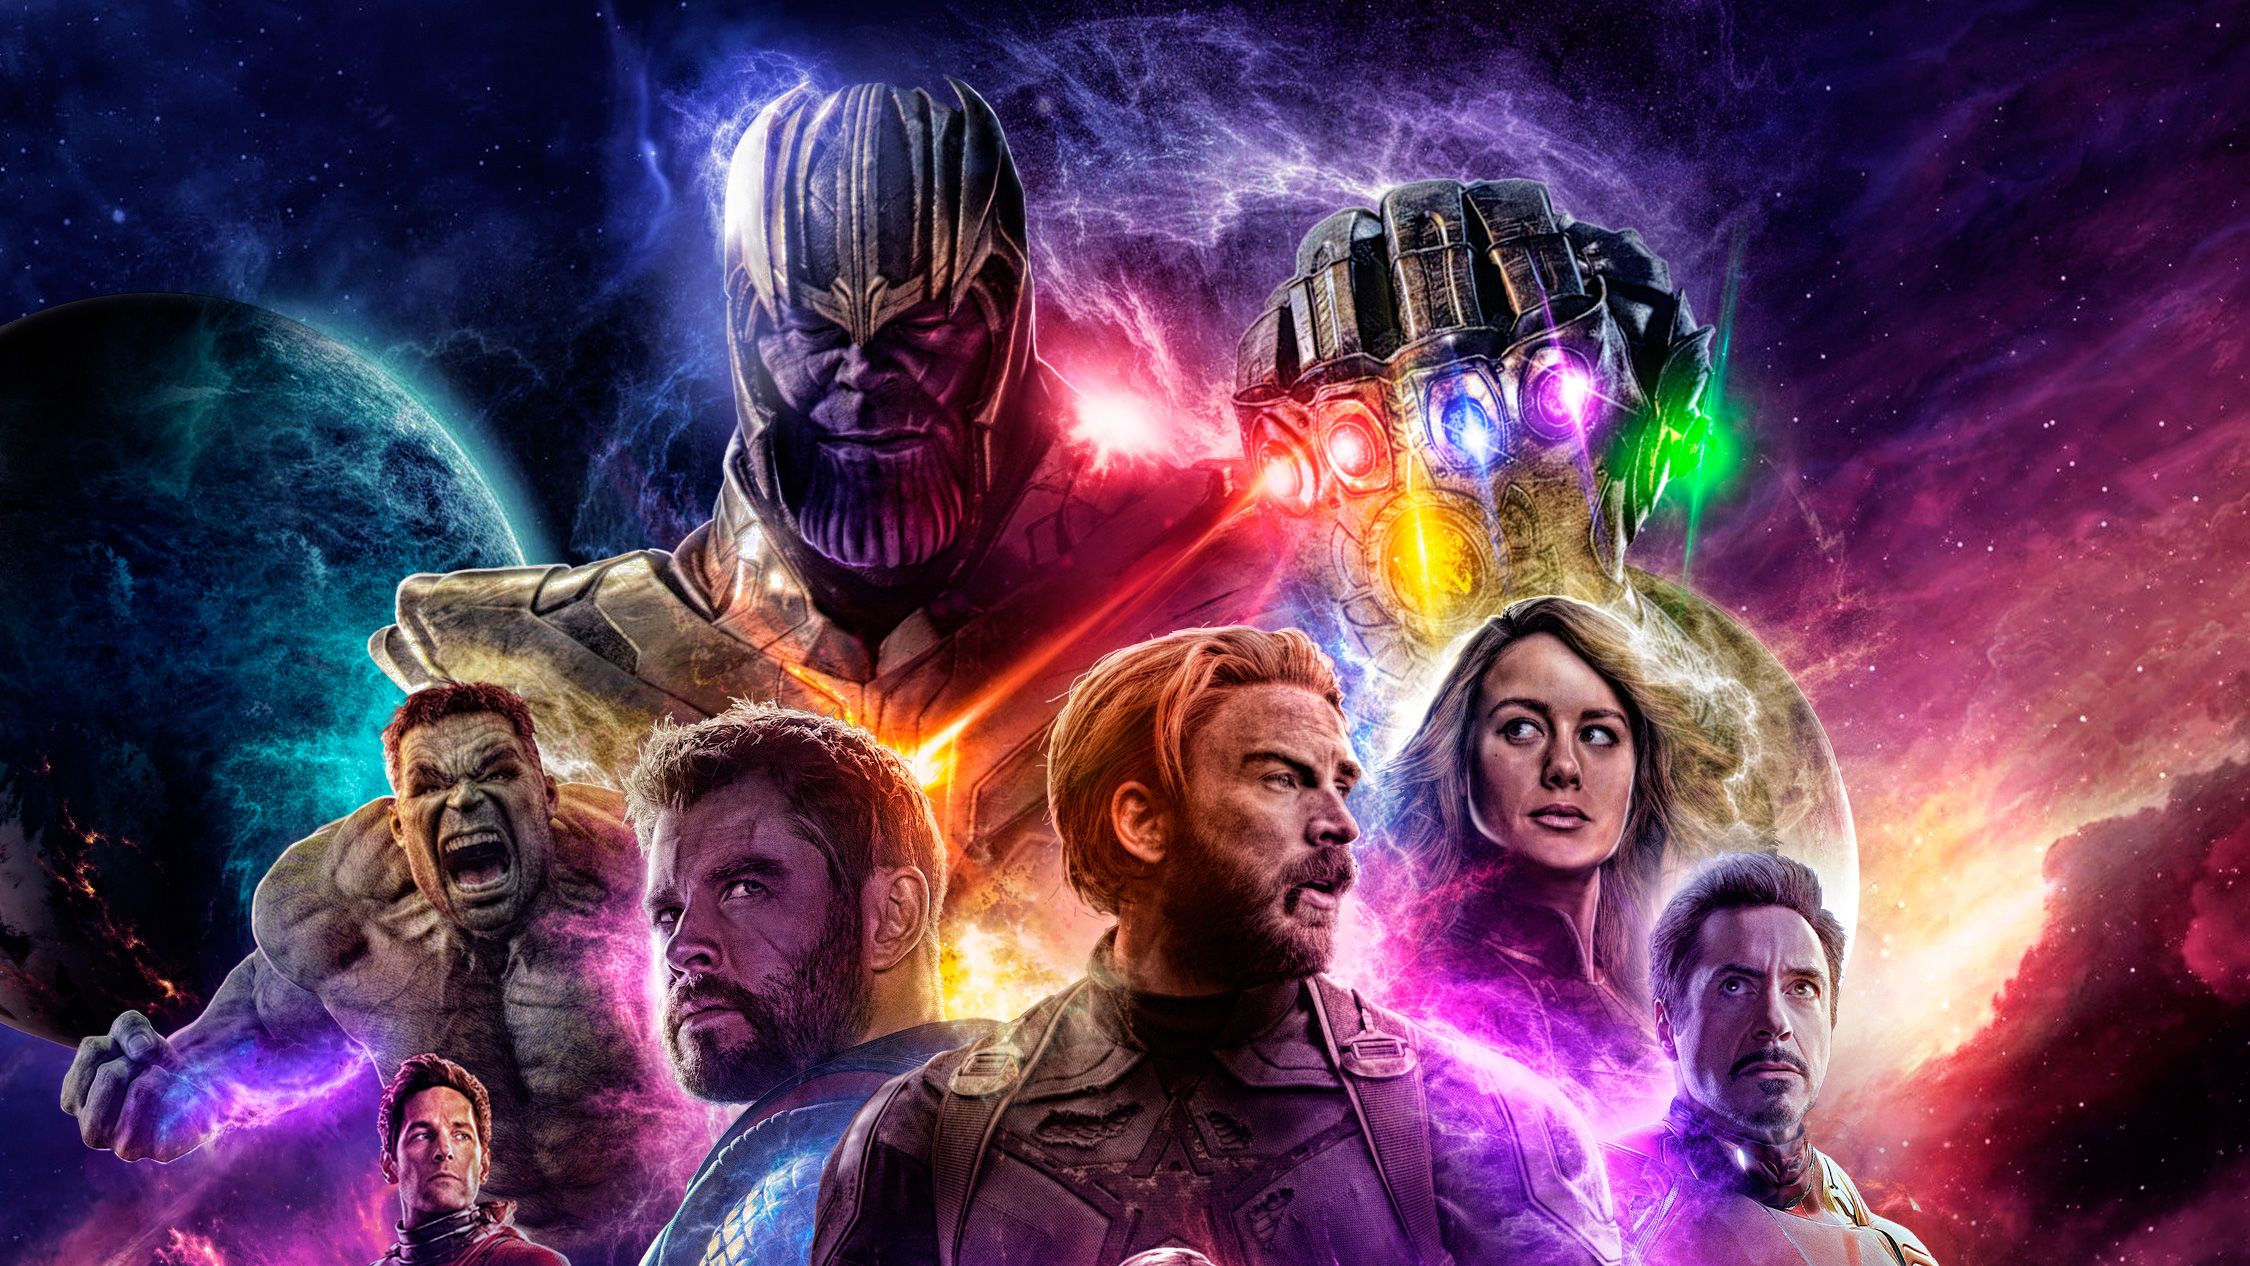 Does Avengers: Endgame Have the Potential to Break the Box Office Record of All Time